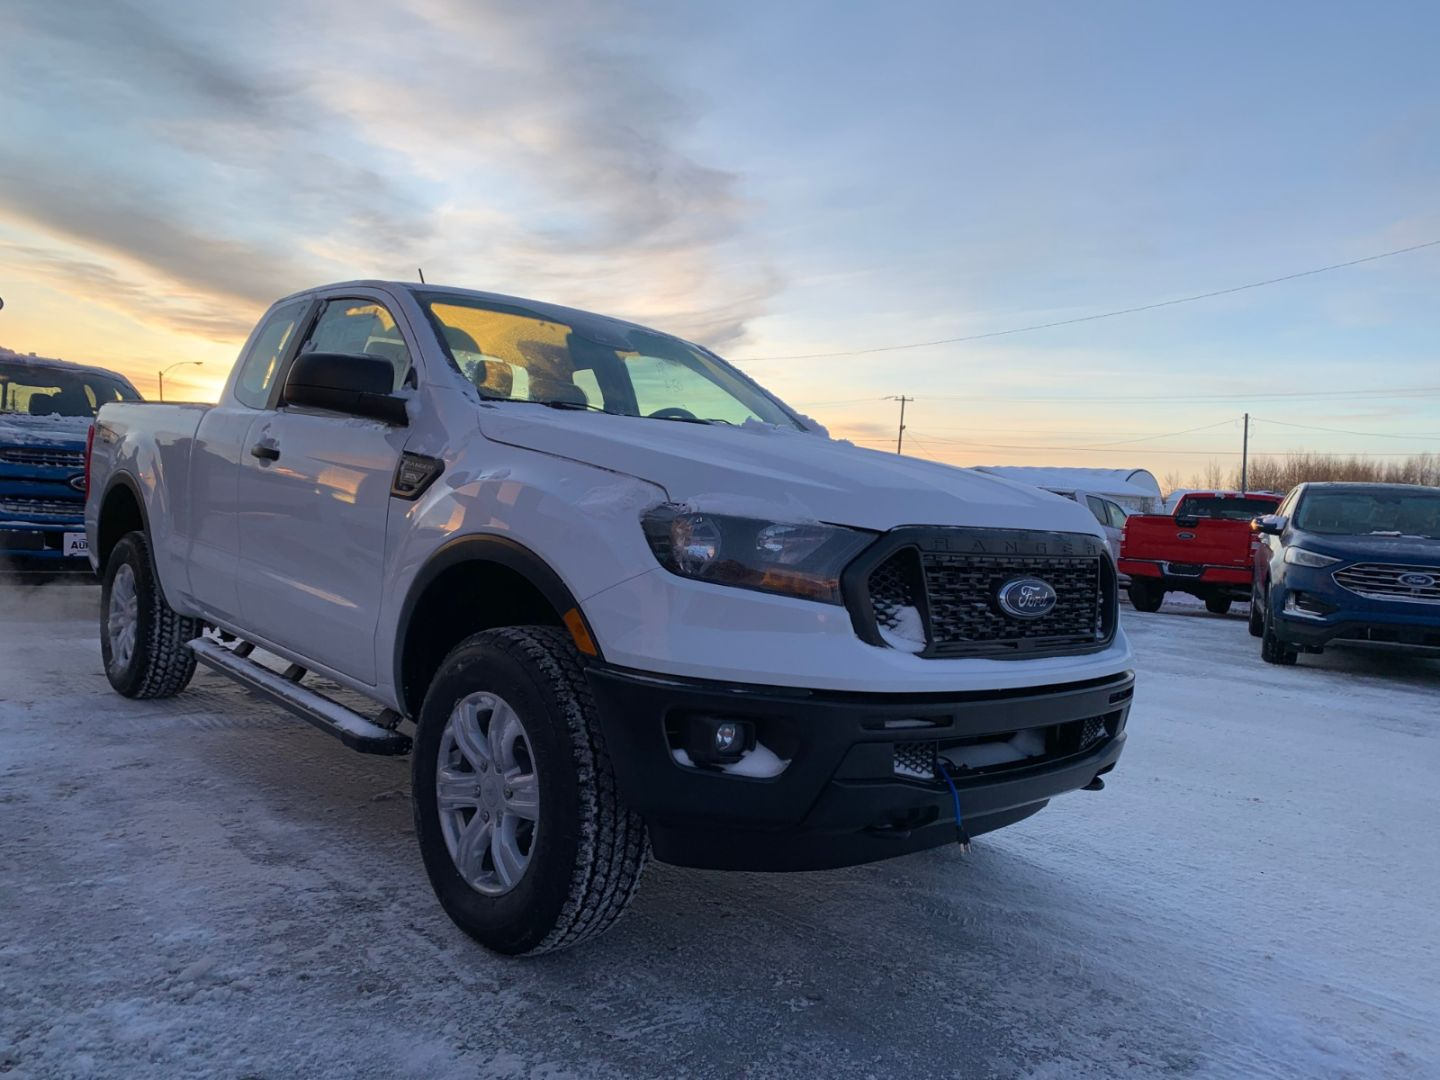 2020 Ford Ranger XL for sale in Hay River, Northwest Territories